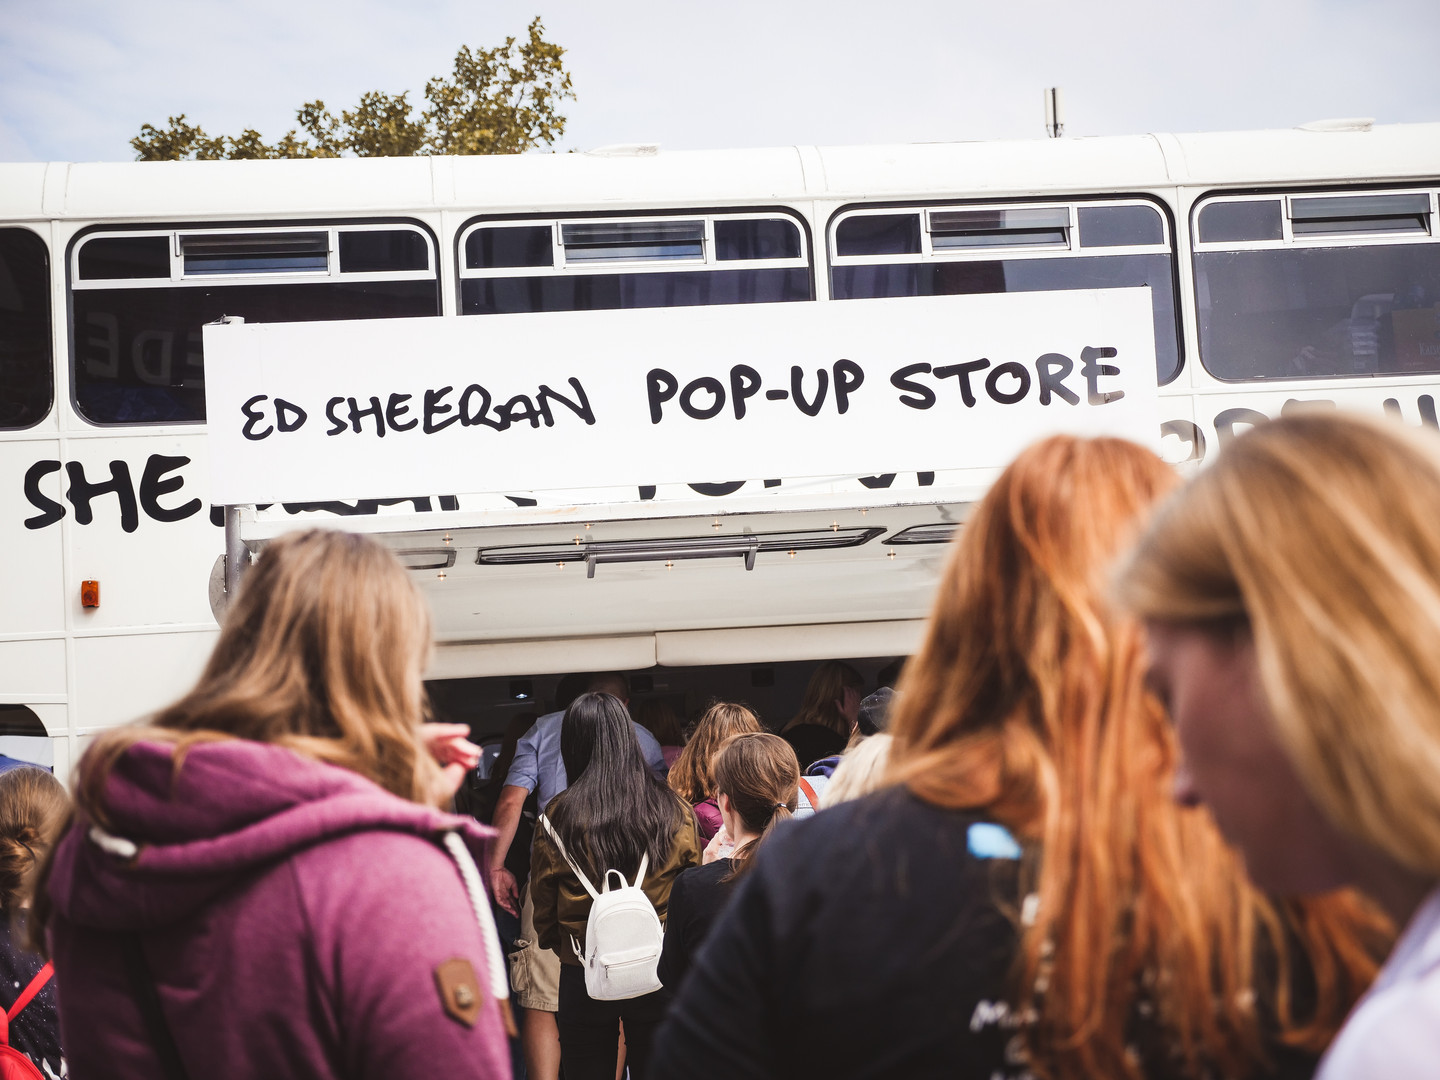 ed sheeran mobile pop up store